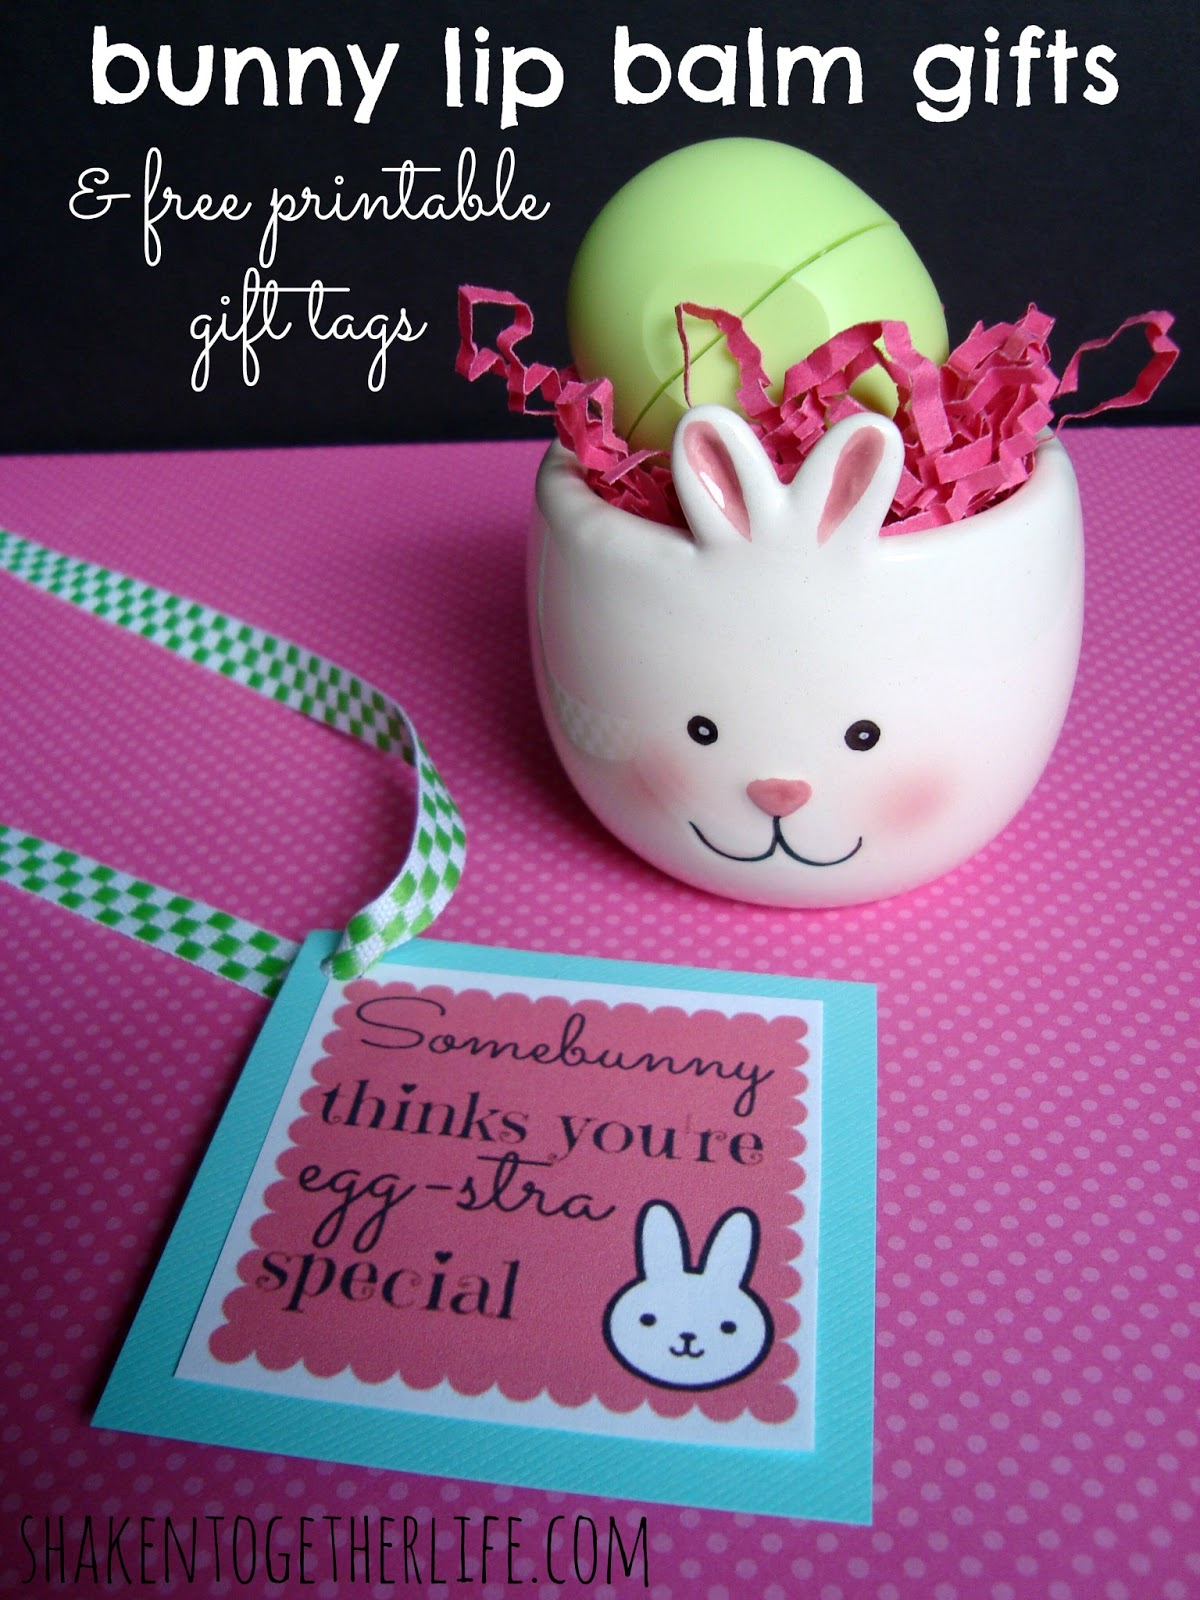 Bunny lip balm gifts for easter printable tags if you need a quick inexpensive easter or spring gift for teachers your baby sitter co workers teens and tweens this one could be it negle Image collections